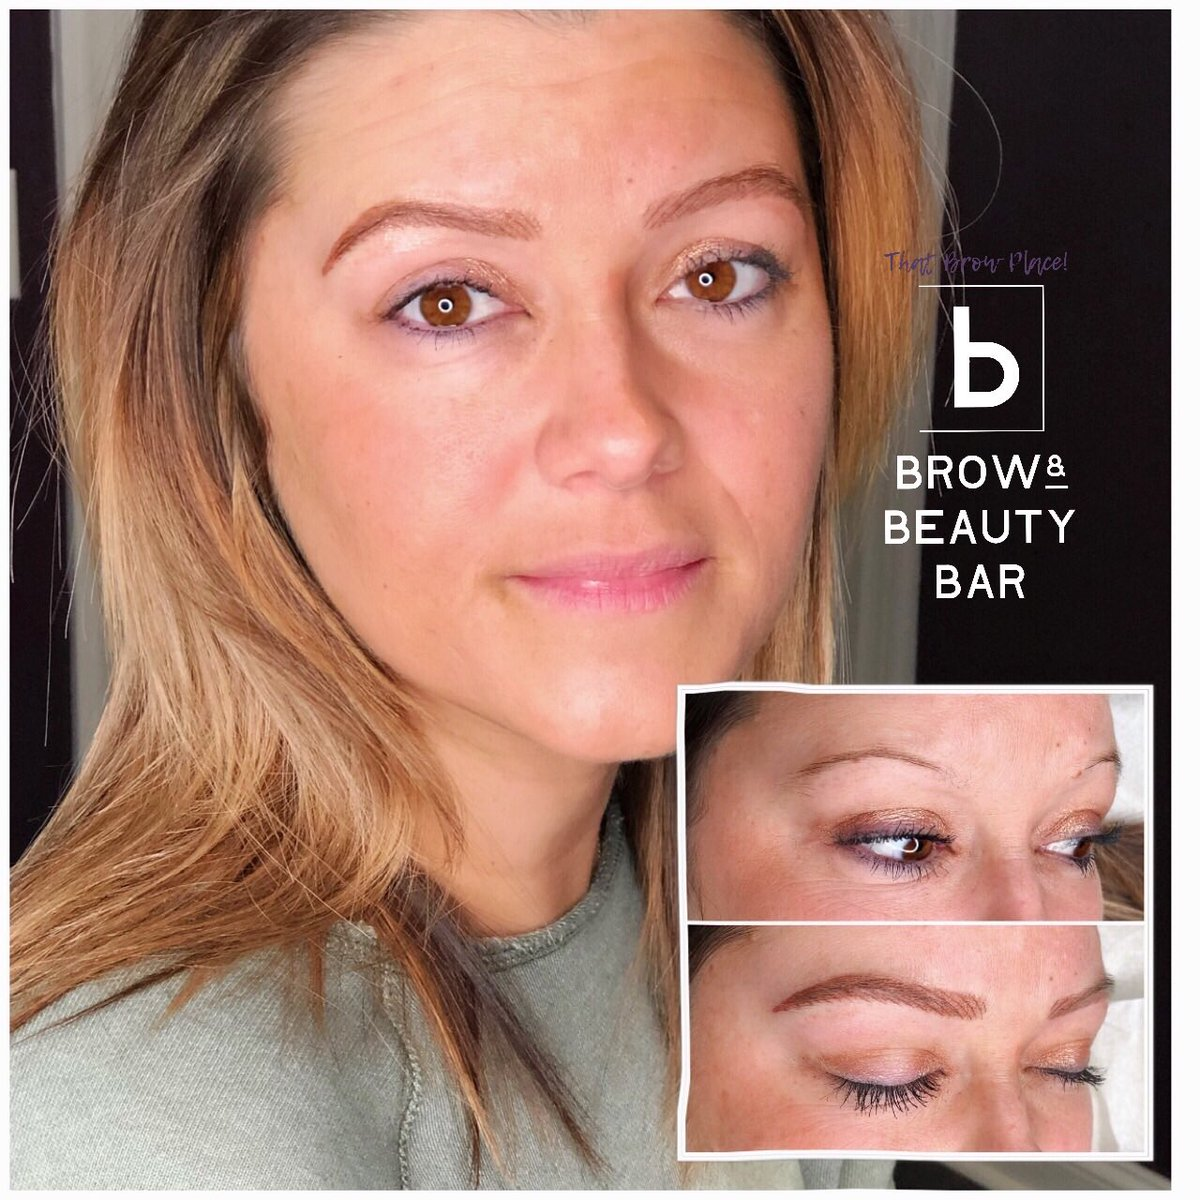 Brow & Beauty Bar (@ThatBrowPlace) | Twitter